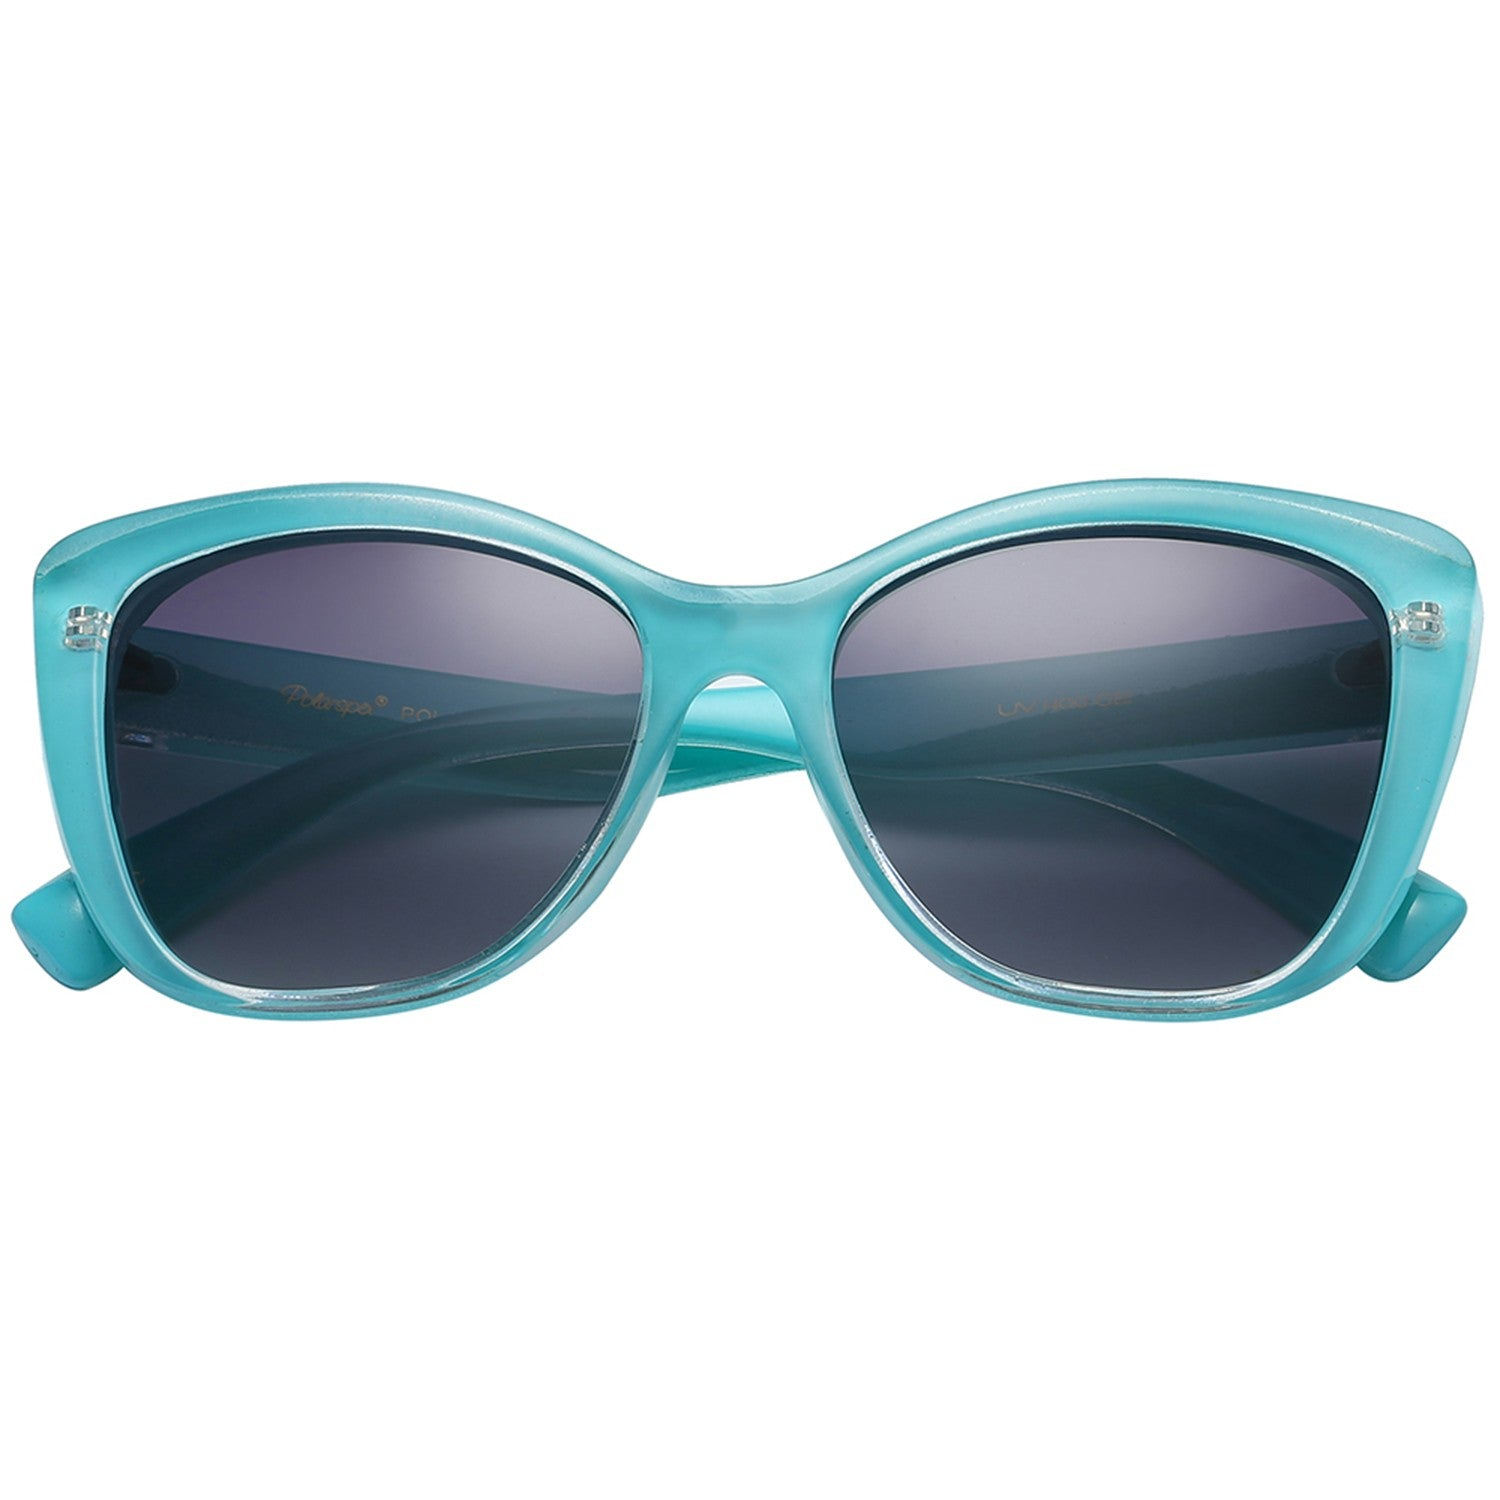 Polarspex Polarized Jackie-O Cat Eyes Style Sunglasses with Turquoise Teal Frames and Polarized Gradient Smoke Lenses for Women